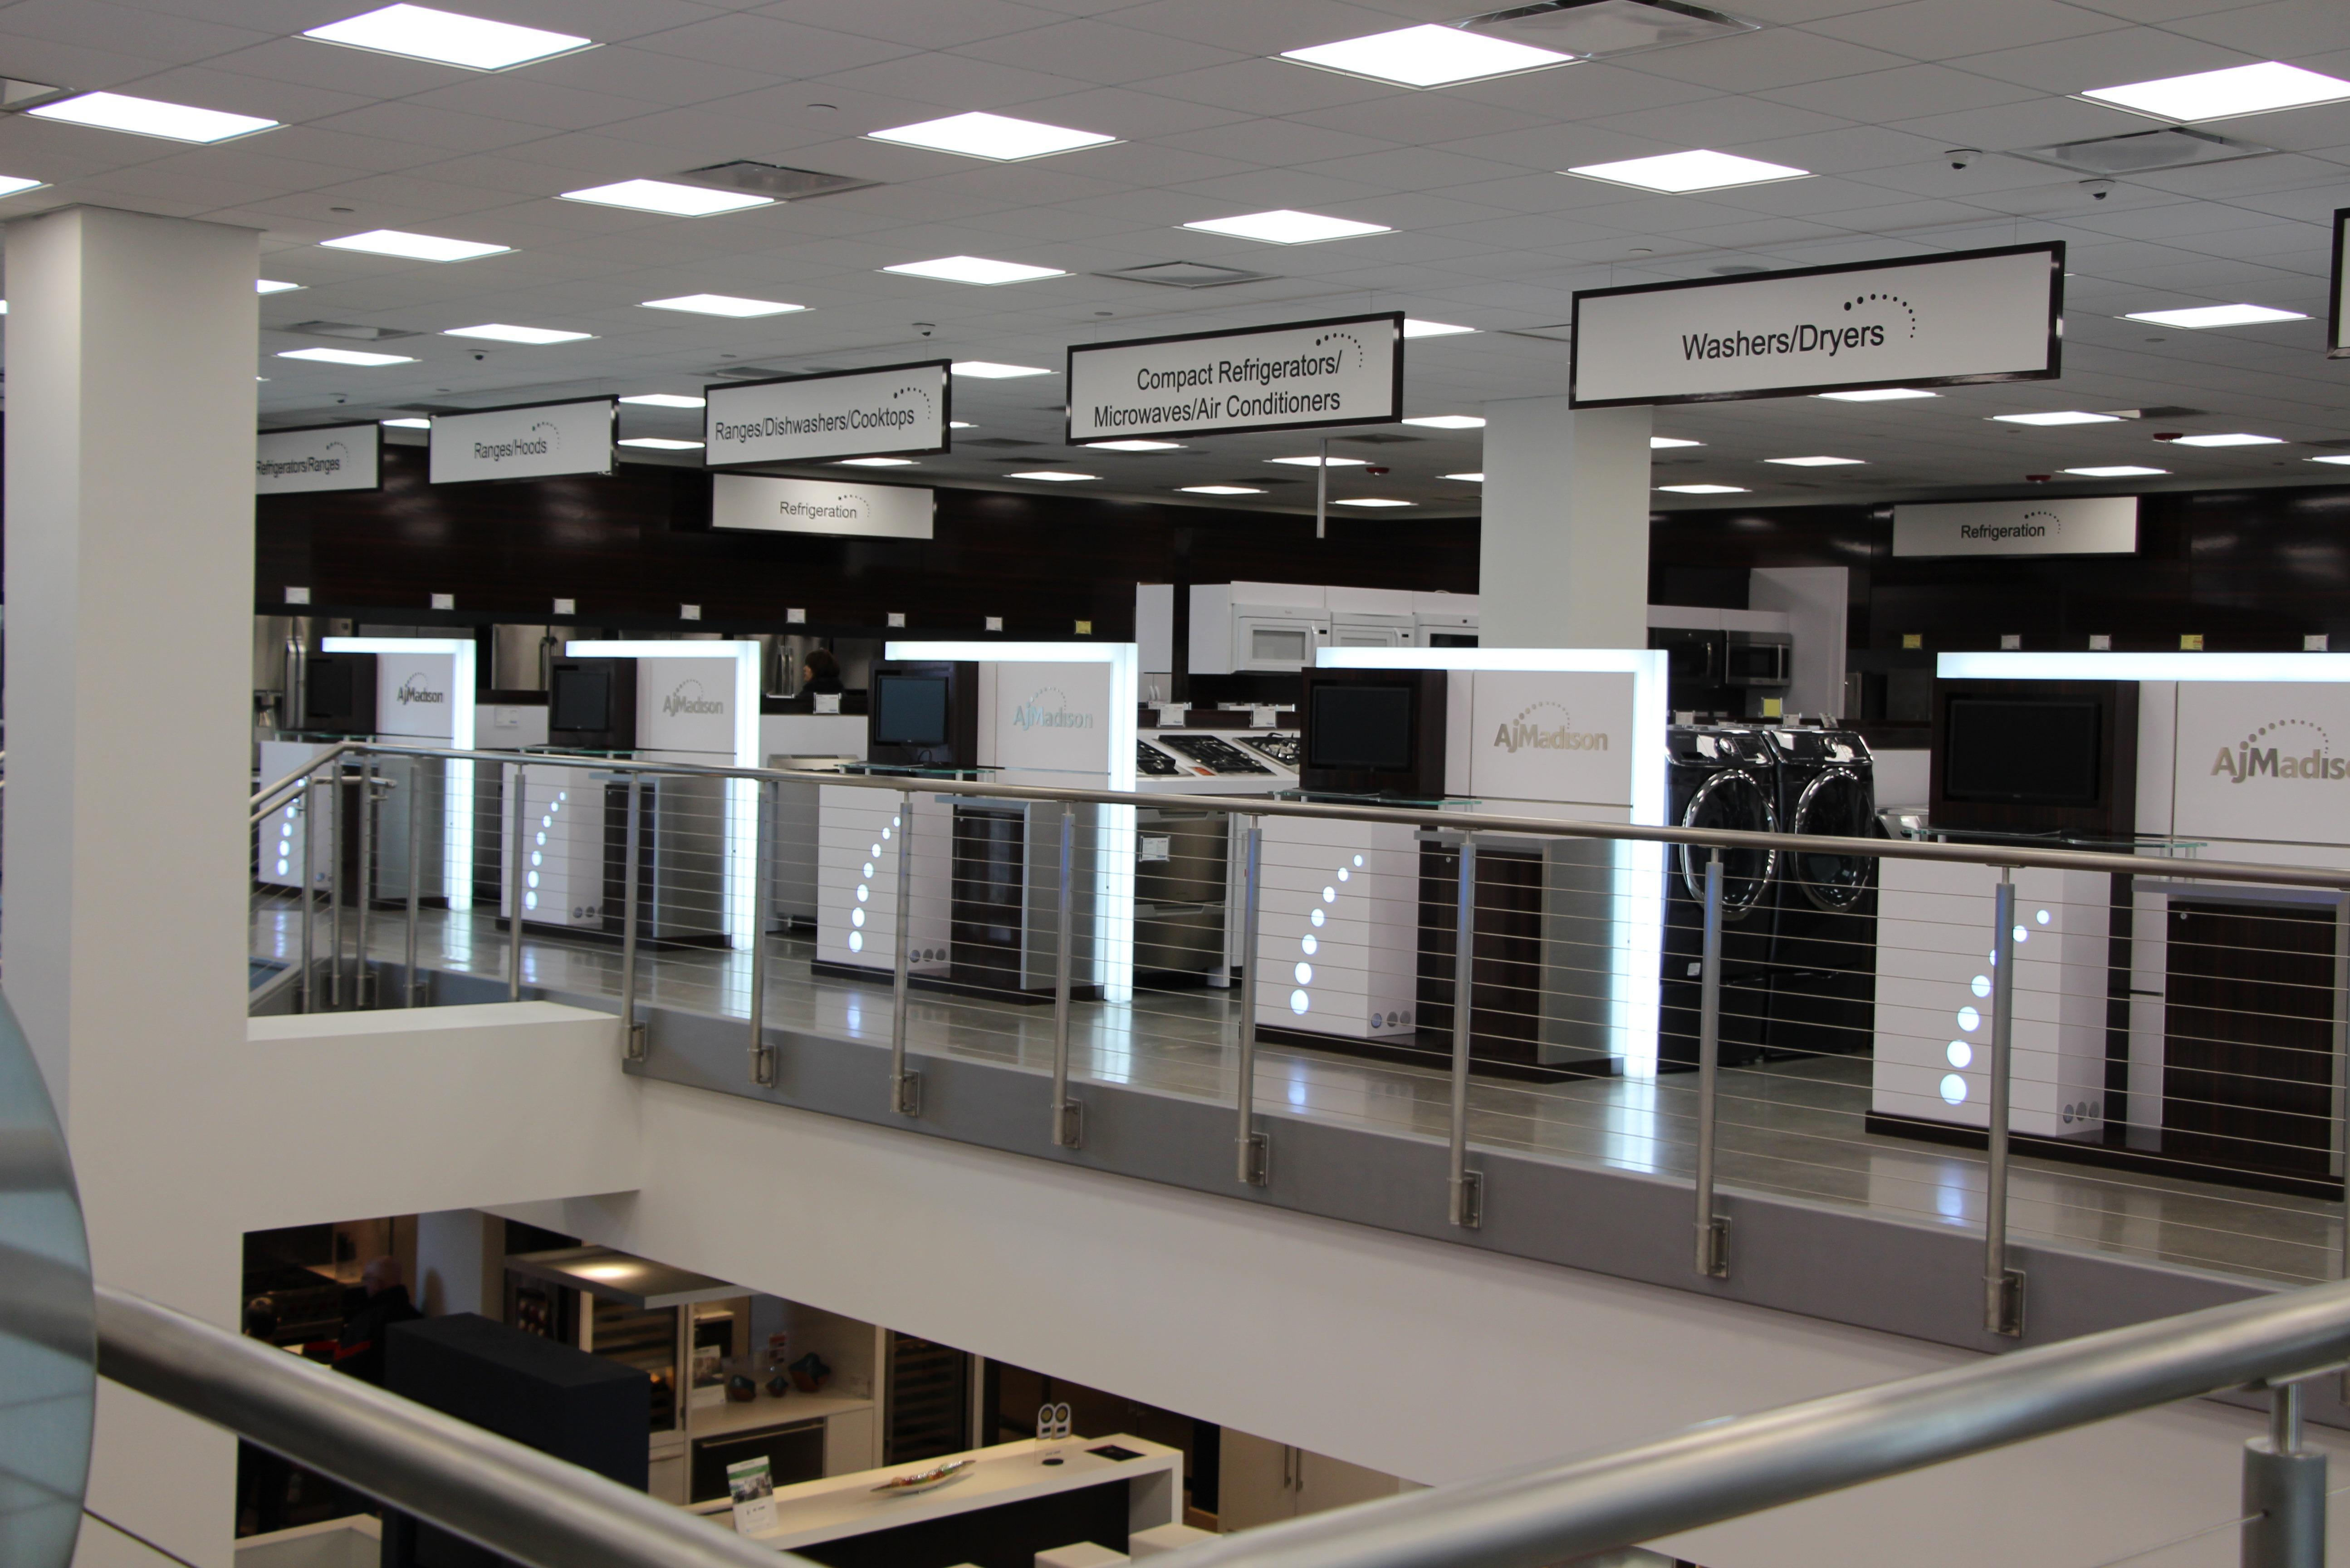 AJ Madison Home & Kitchen Appliances Store and More image 2